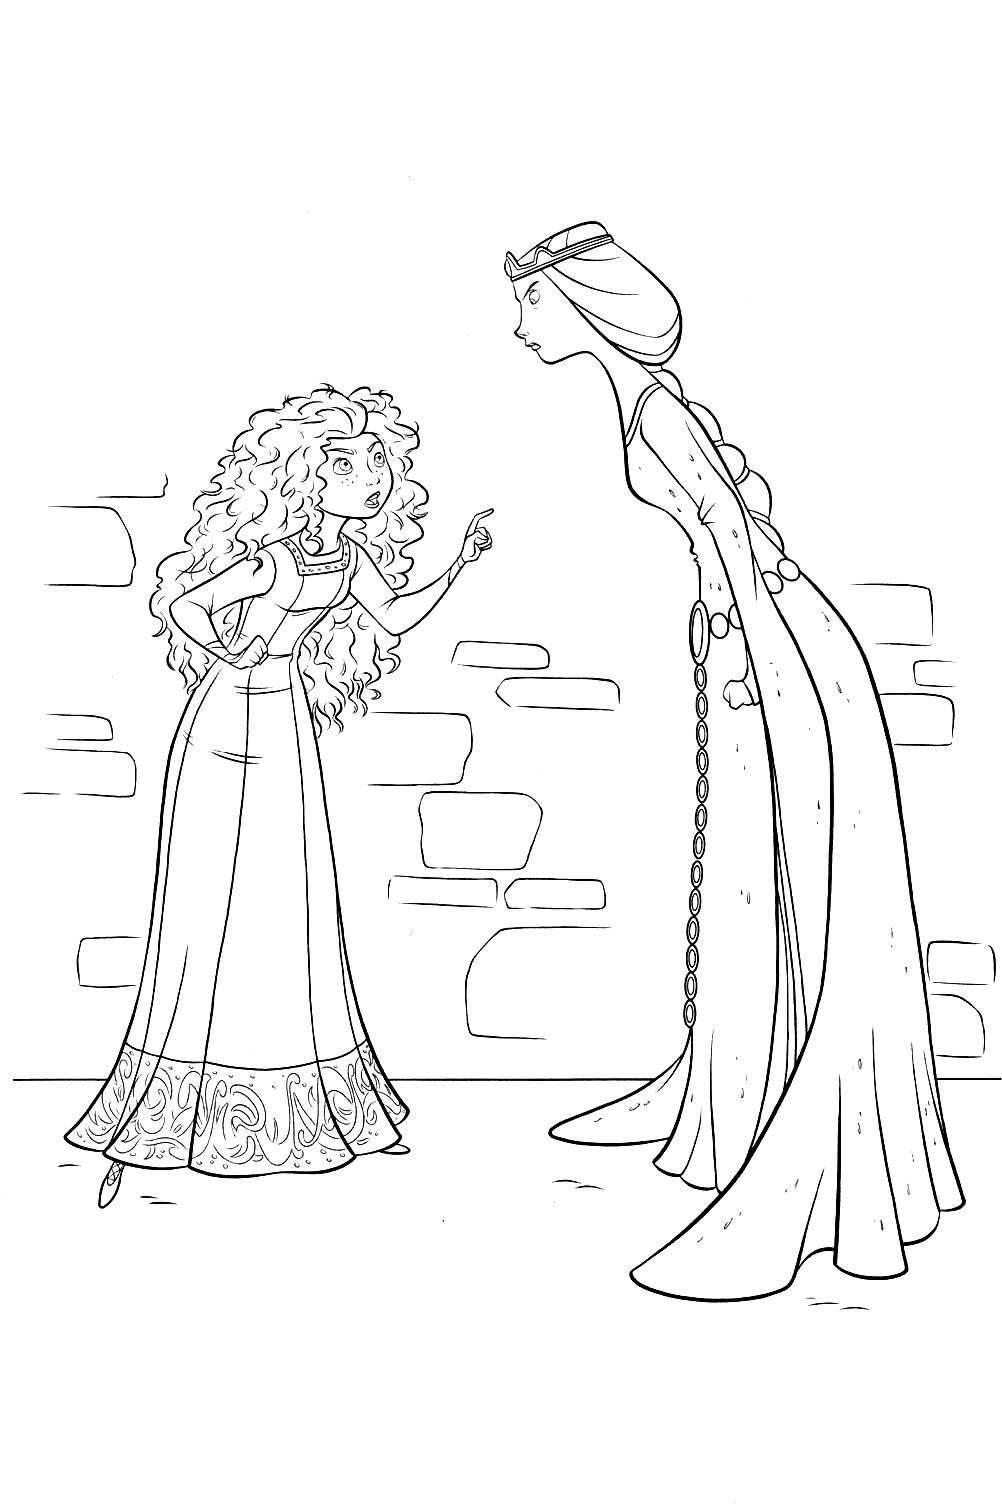 Princess Merida Was Talking At Her Friend Coloring Pages | Brave ...